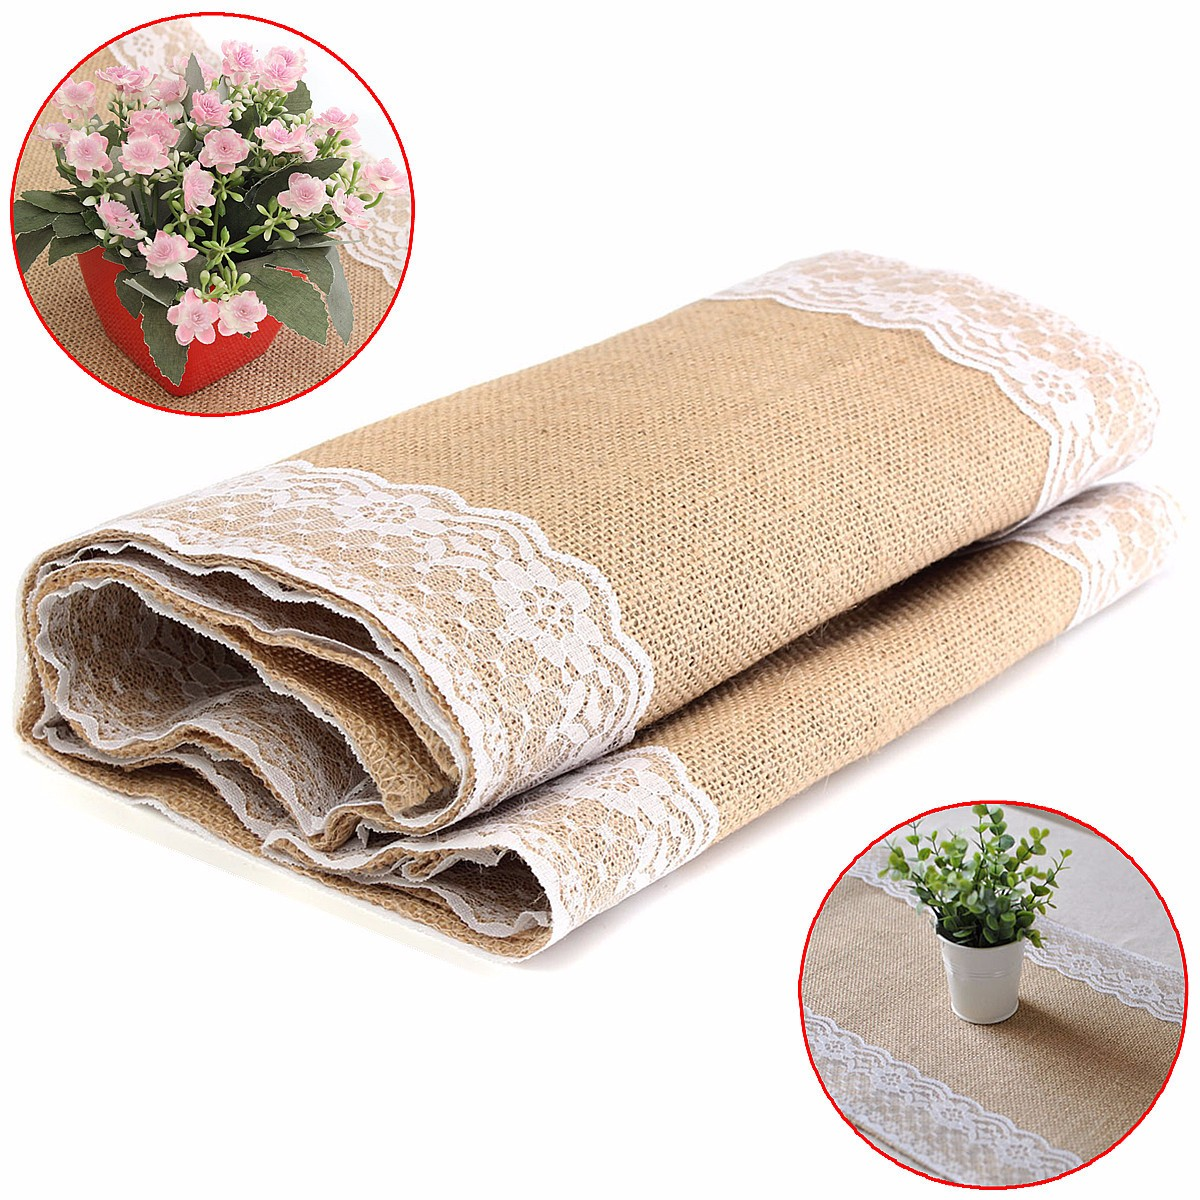 30x180cm Natural Vintage Burlap Lace Tablecloth Runner Elegance Chair Yarn Chrismas Party Decor